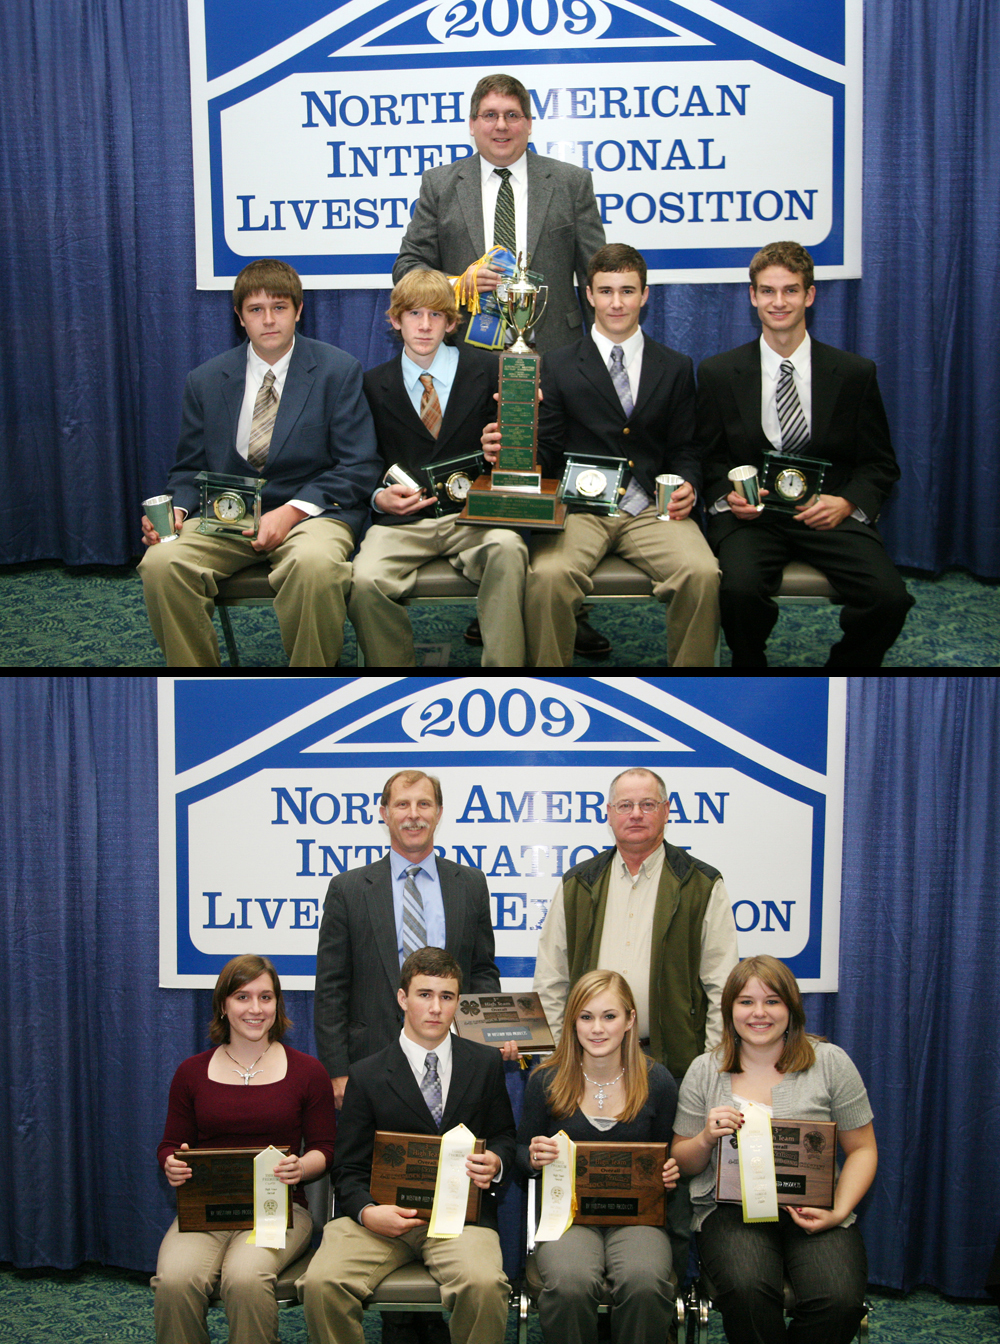 Top image Virginia 4-H Livestock Judging Team, seated left to right: Lacey Koontz, Bobby Strecker, Laura Kate Reeves, and Bly Patterson. Standing (left) Mark Wahlberg, coach, and (right) Willie Hayes of Westway Feeds sponsored the awards. Bottom image Virginia 4-H Skillathon Team, left to right: Logan Turner, Christian Deavers, Bobby Strecker, and Marshall Slaven. Standing is Eric Stogdale, coach.